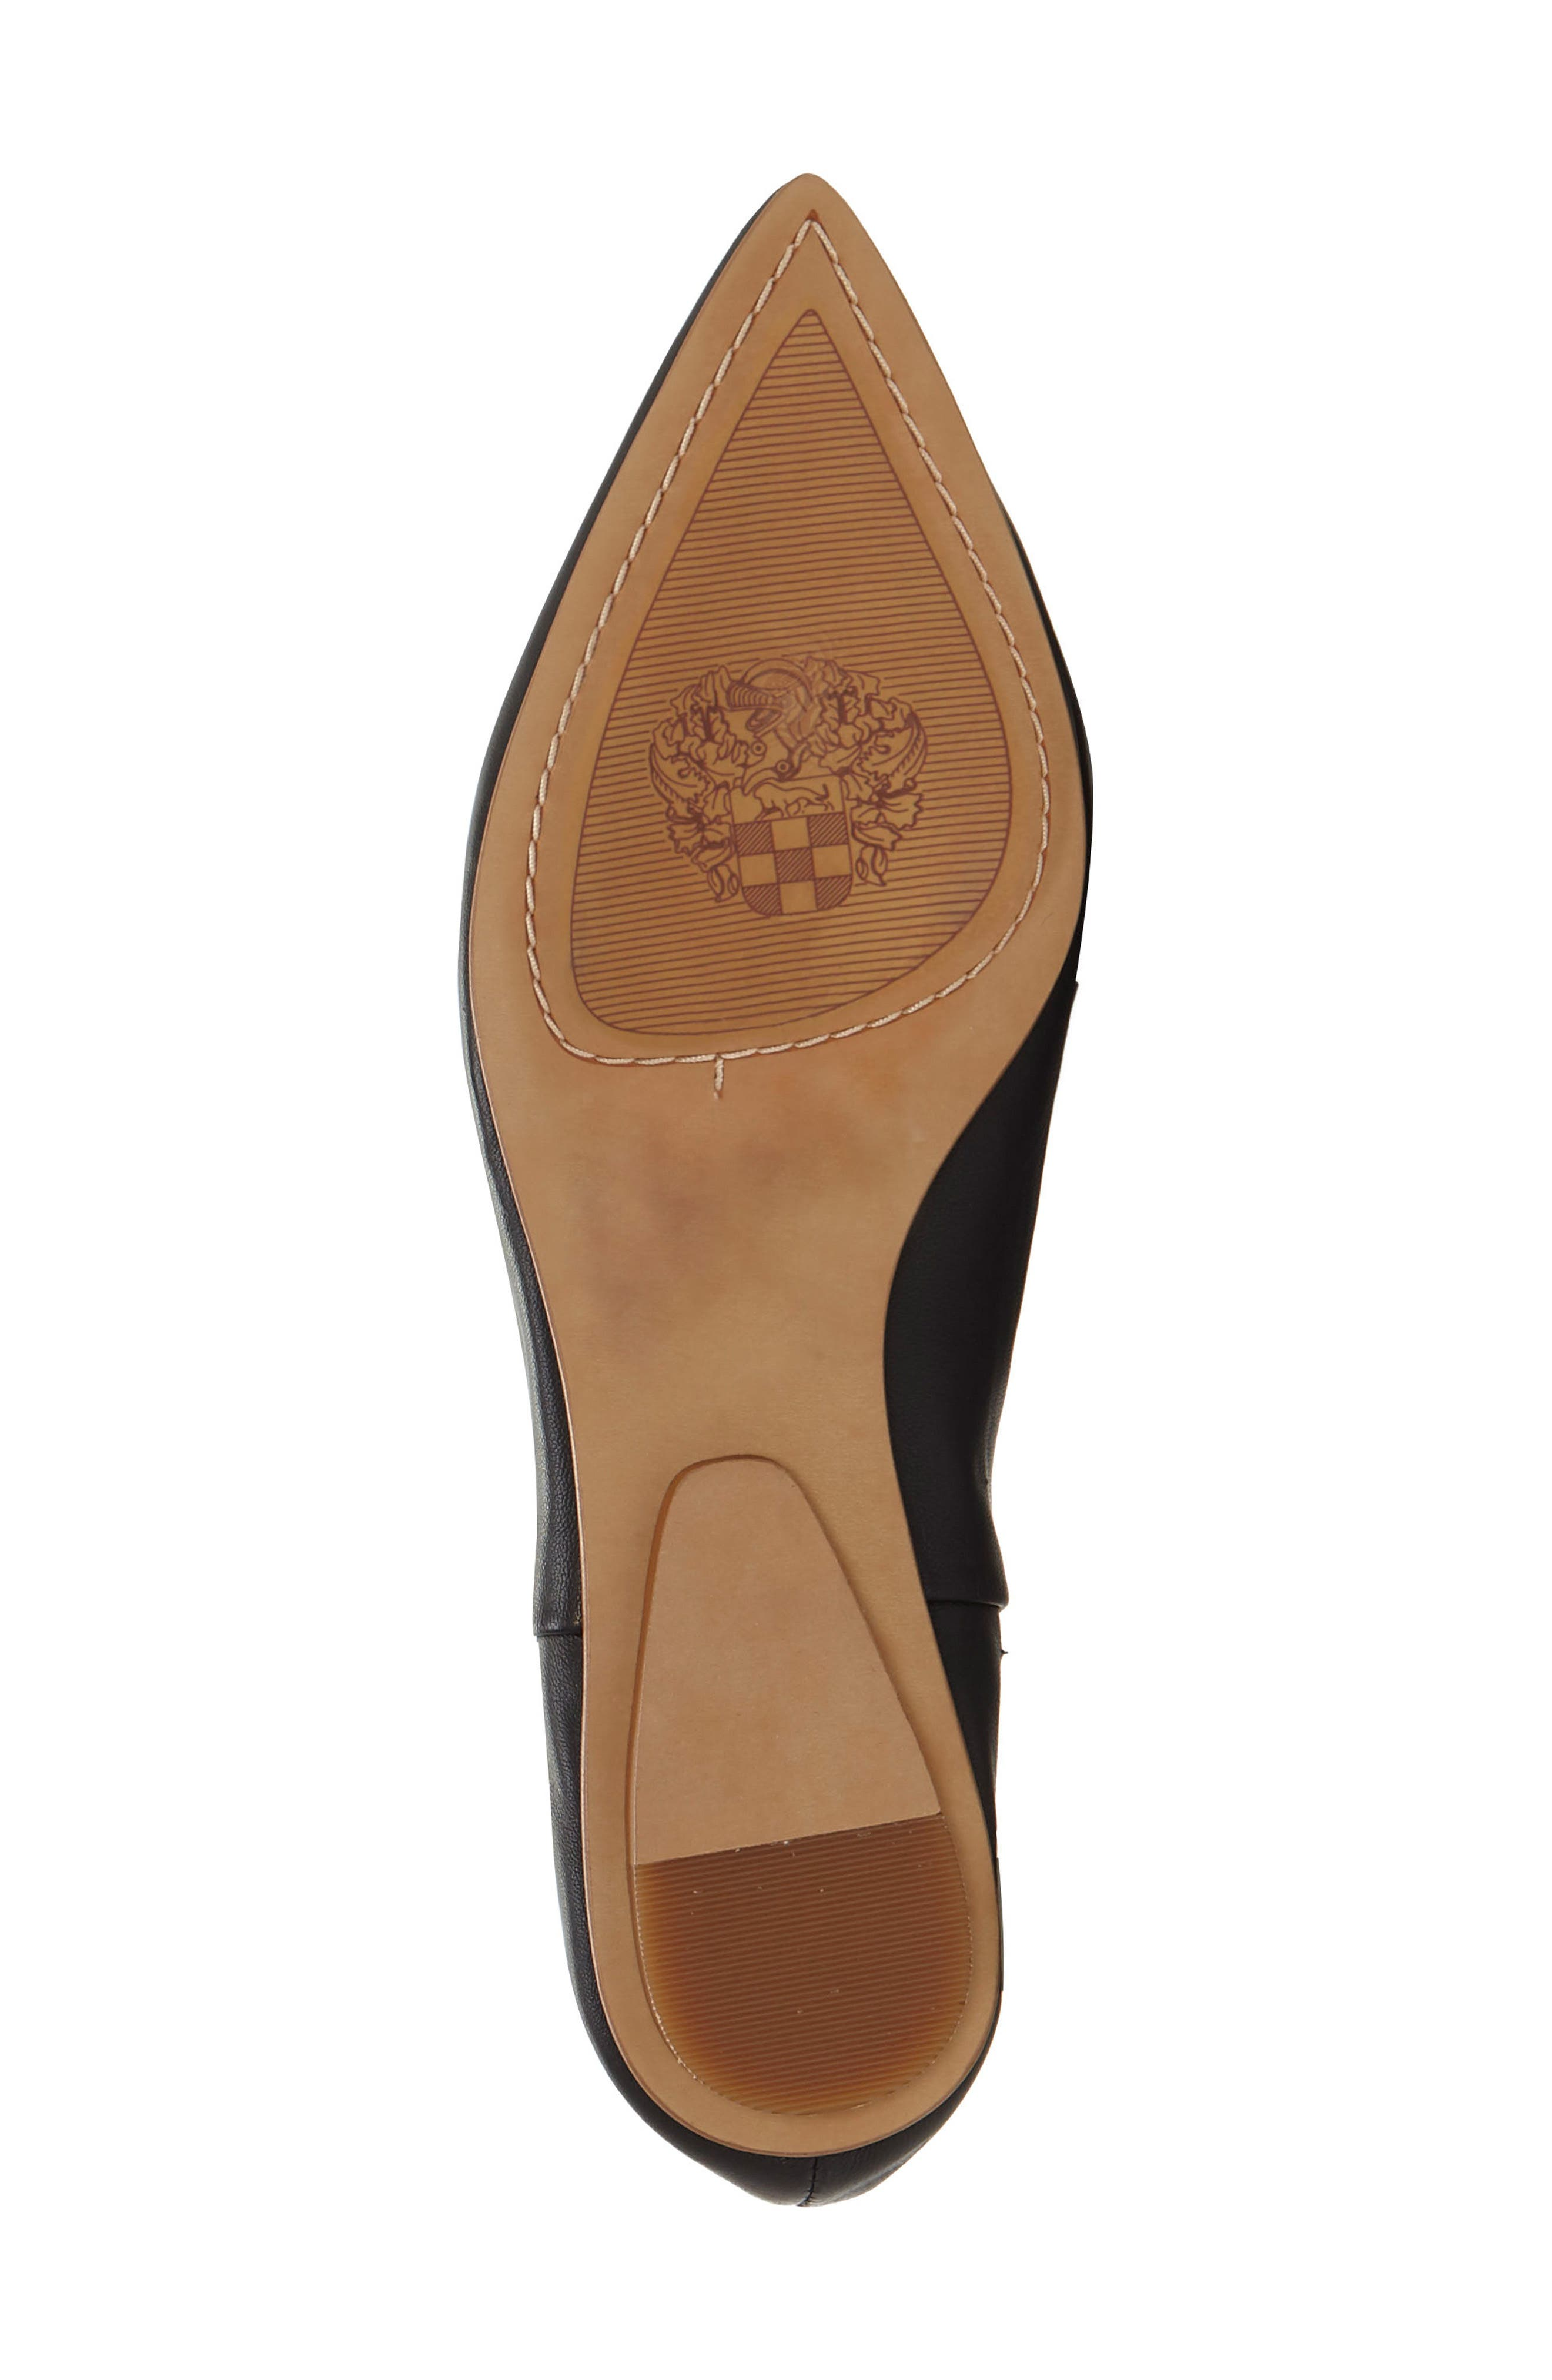 Stanta Pointy Toe Flat,                             Alternate thumbnail 6, color,                             001